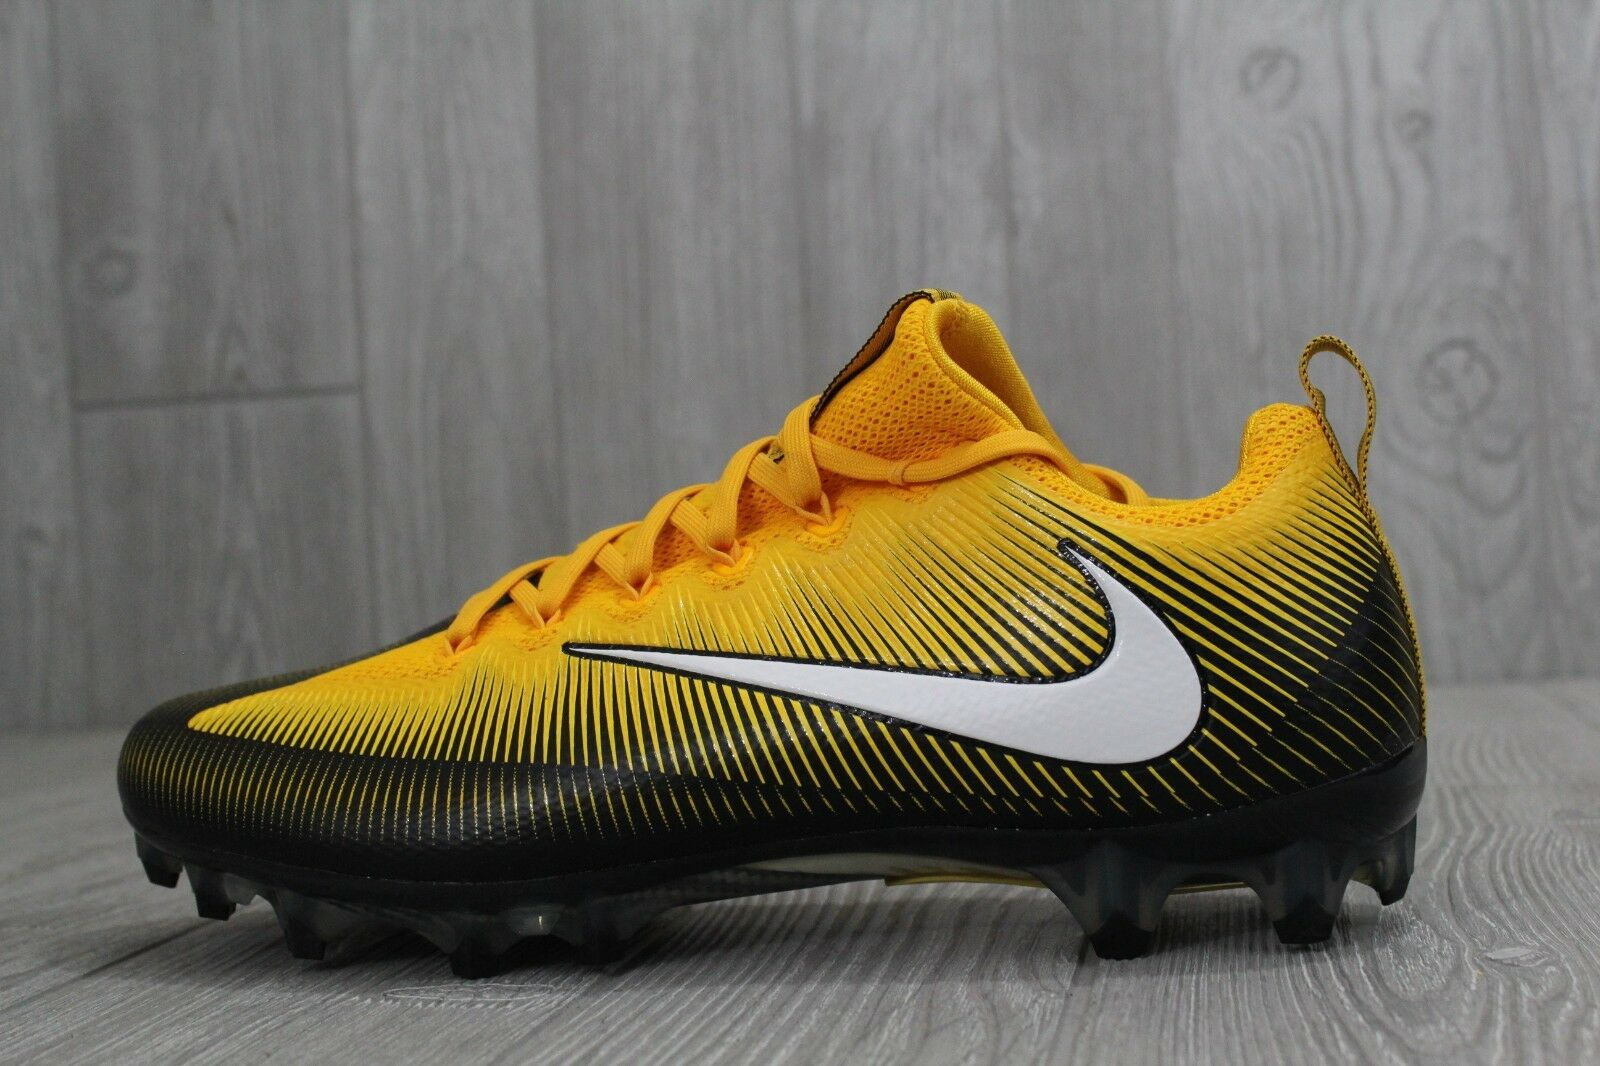 31 Nike Vapor Untouchable Pro Men's Football Cleats Yellow Black 839924-025 12 Cheap women's shoes women's shoes